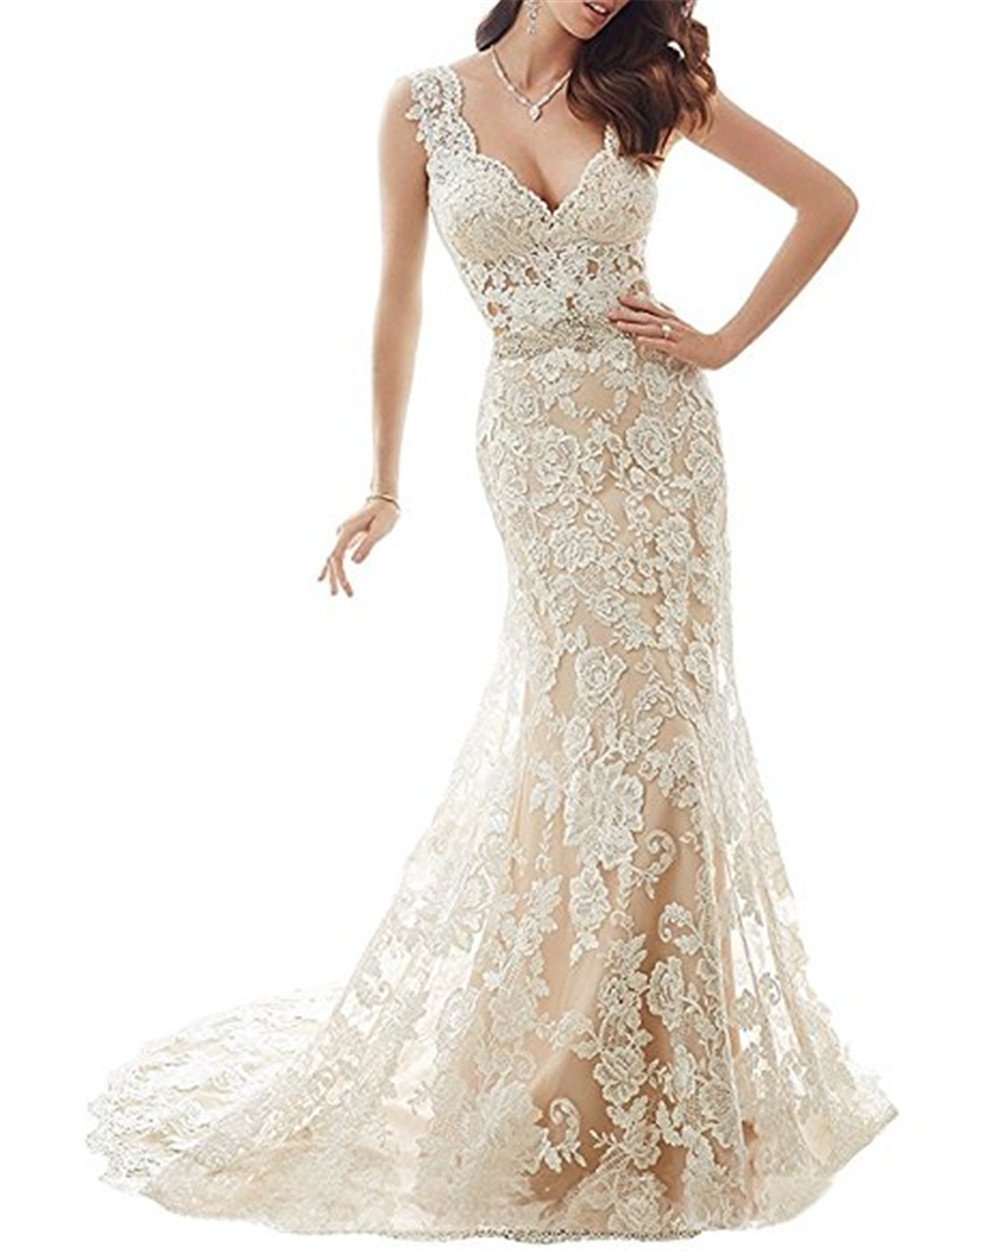 YSMei Womens Illusion Back Mermaid Wedding Dress For Bride Lace Formal Gown With Train Champagne 10